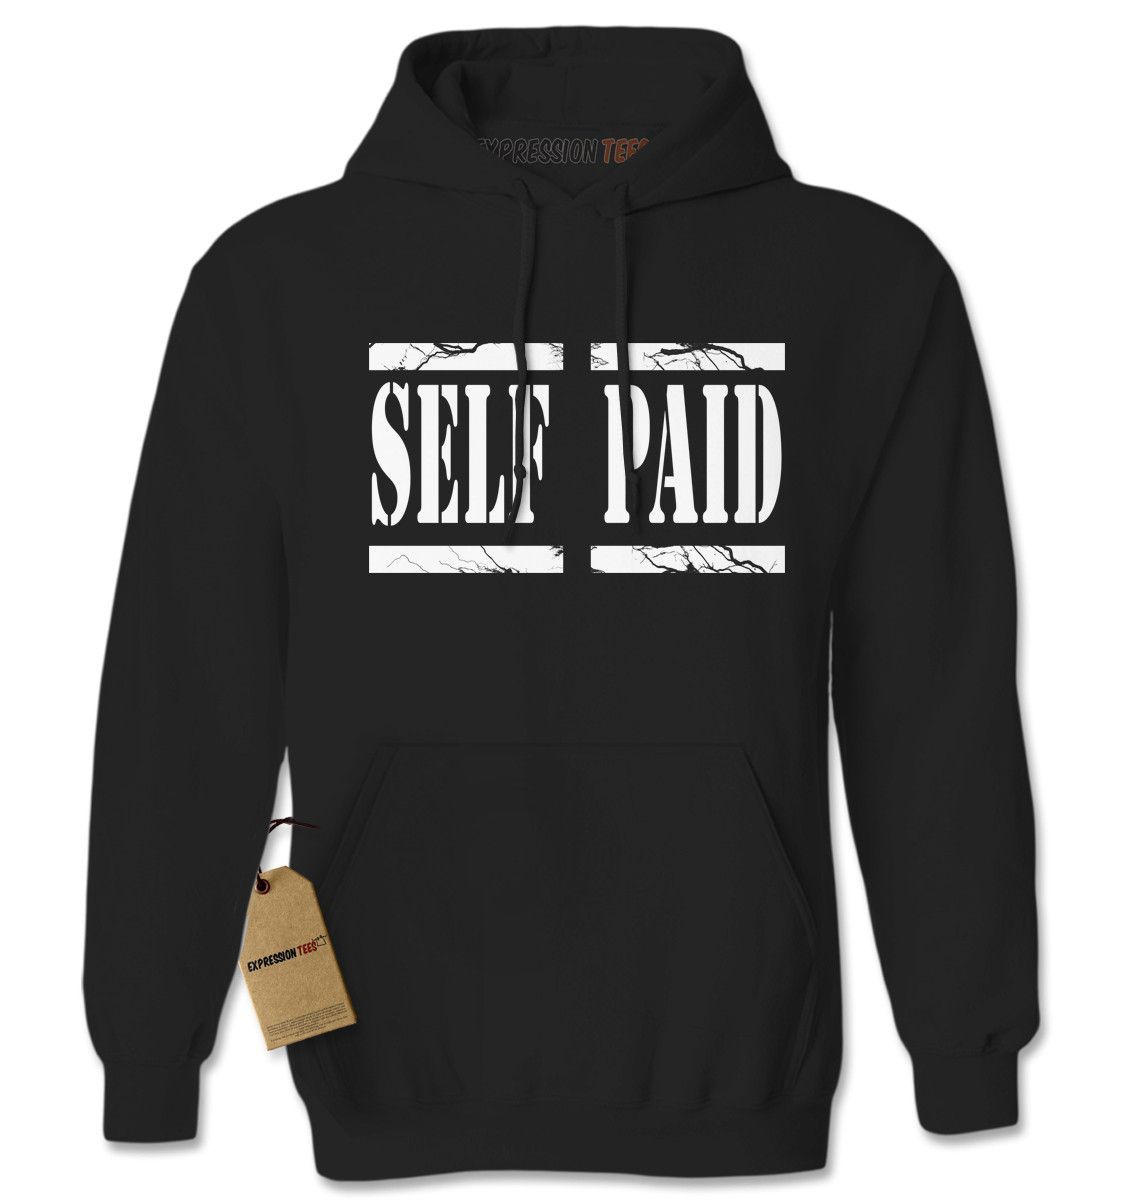 Expression Tees Self Paid Entrepreneur Adult Hoodie Sweatshirt